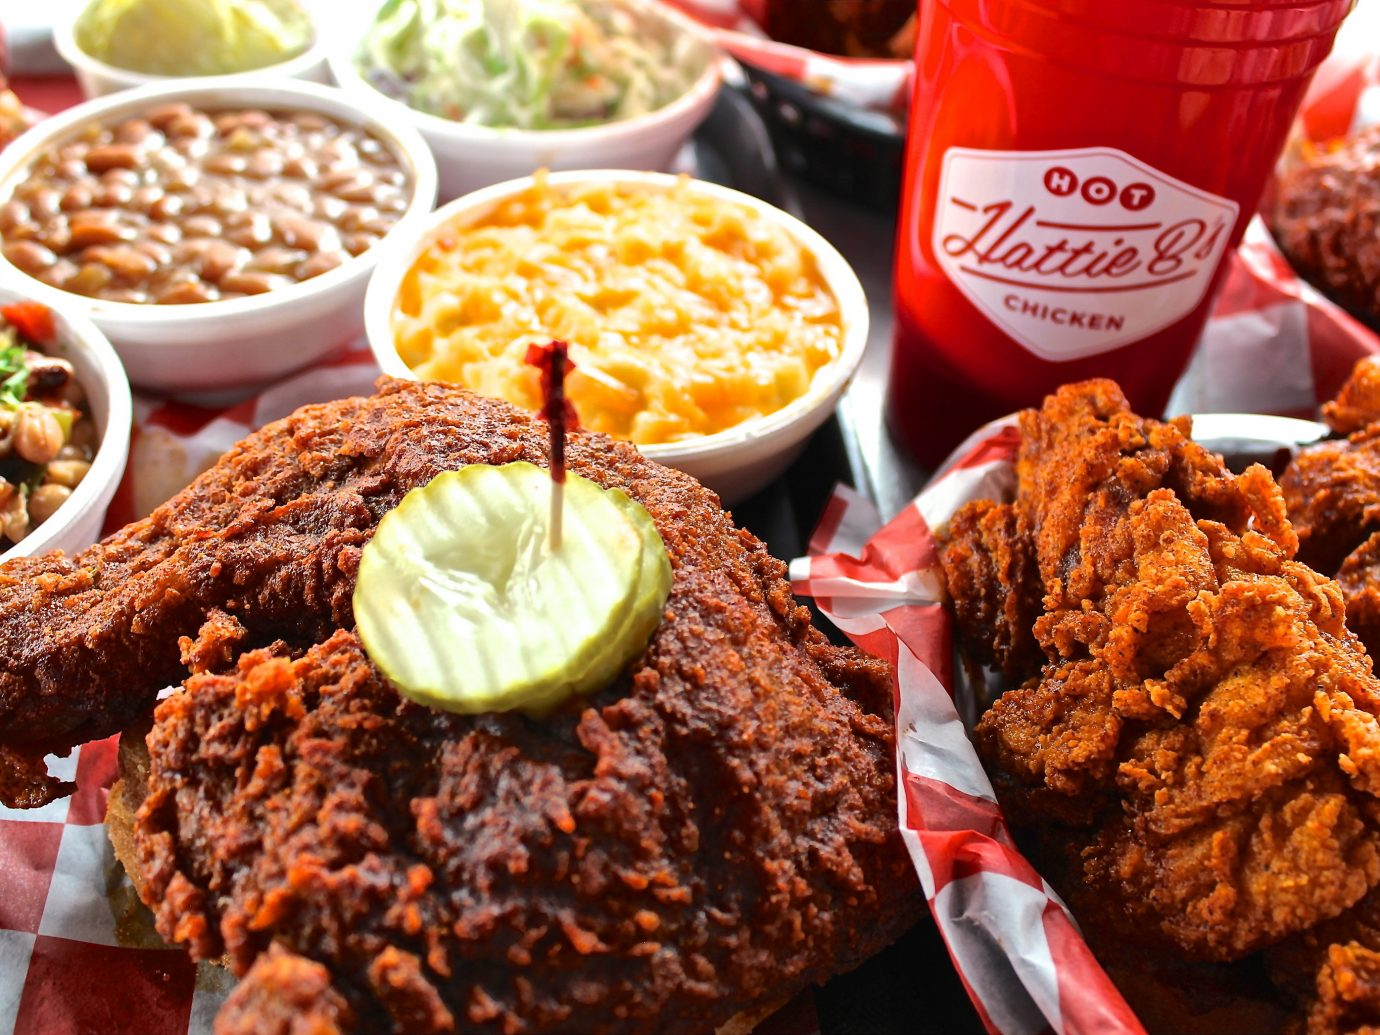 Arts + Culture Austin Food + Drink Hotels Nashville Trip Ideas food dish plate fried food meal meat fast food breakfast snack food produce cuisine close several